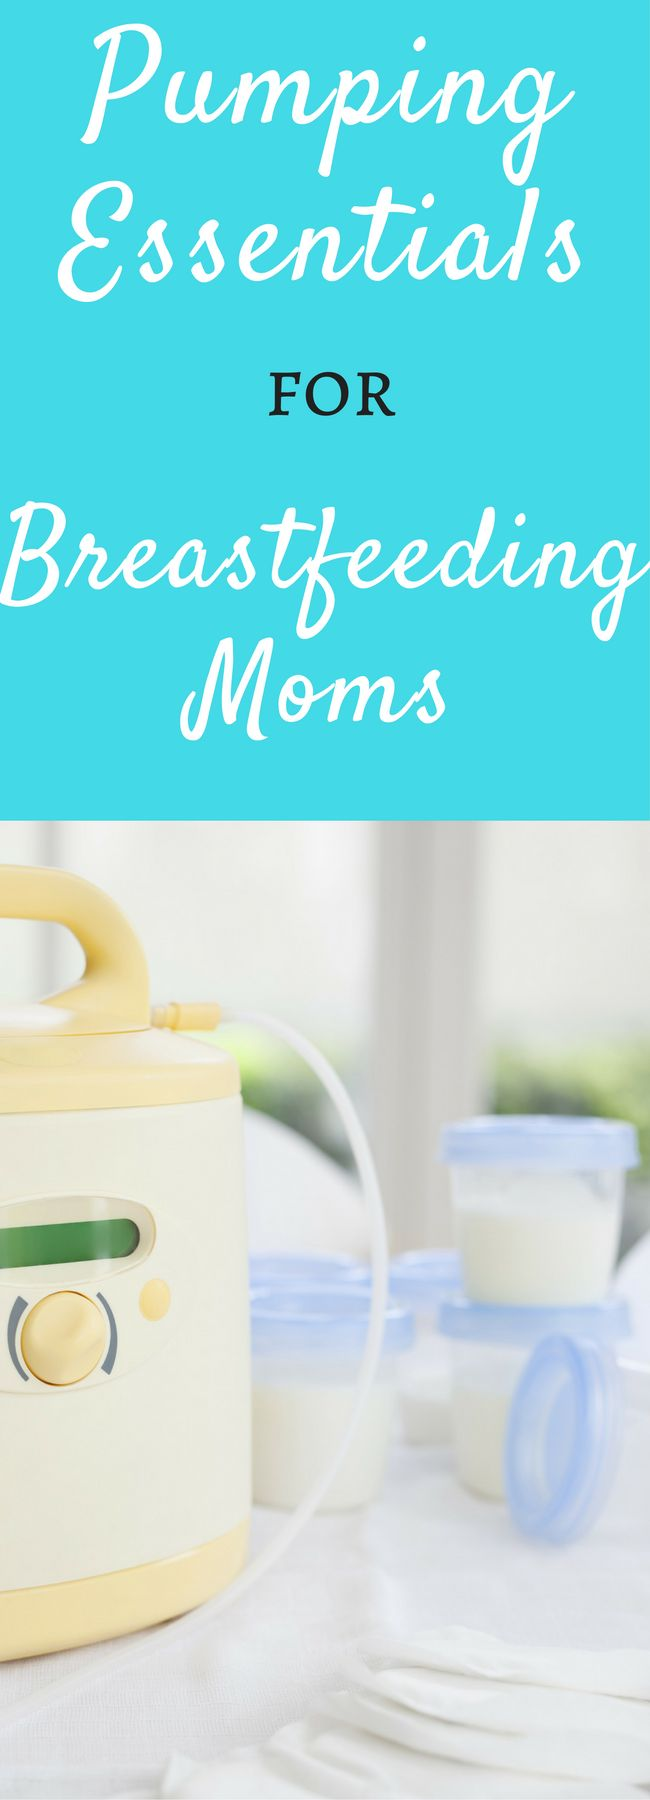 Pumping essentials for breastfeeding moms. Great tips here!